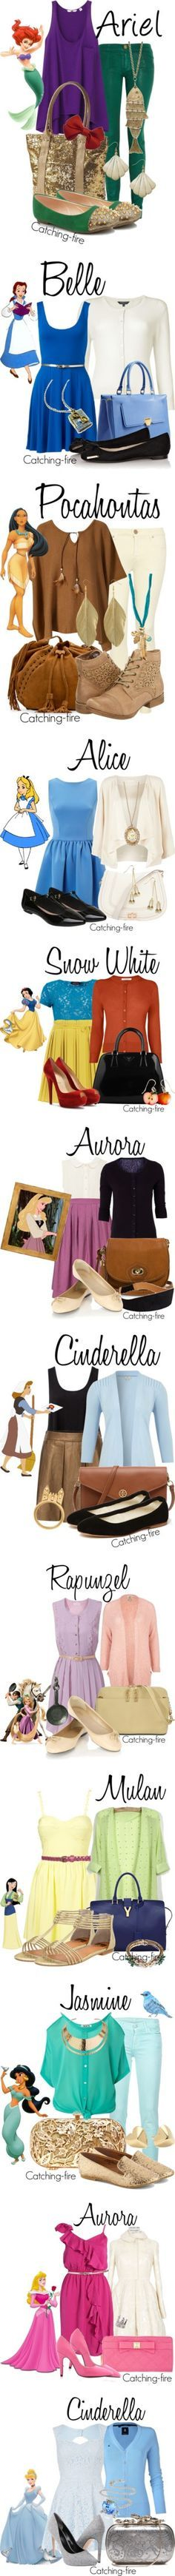 Disney Fashion!! Would be fun to wear these outfits on our trip to Disney land with the kids some day! :)